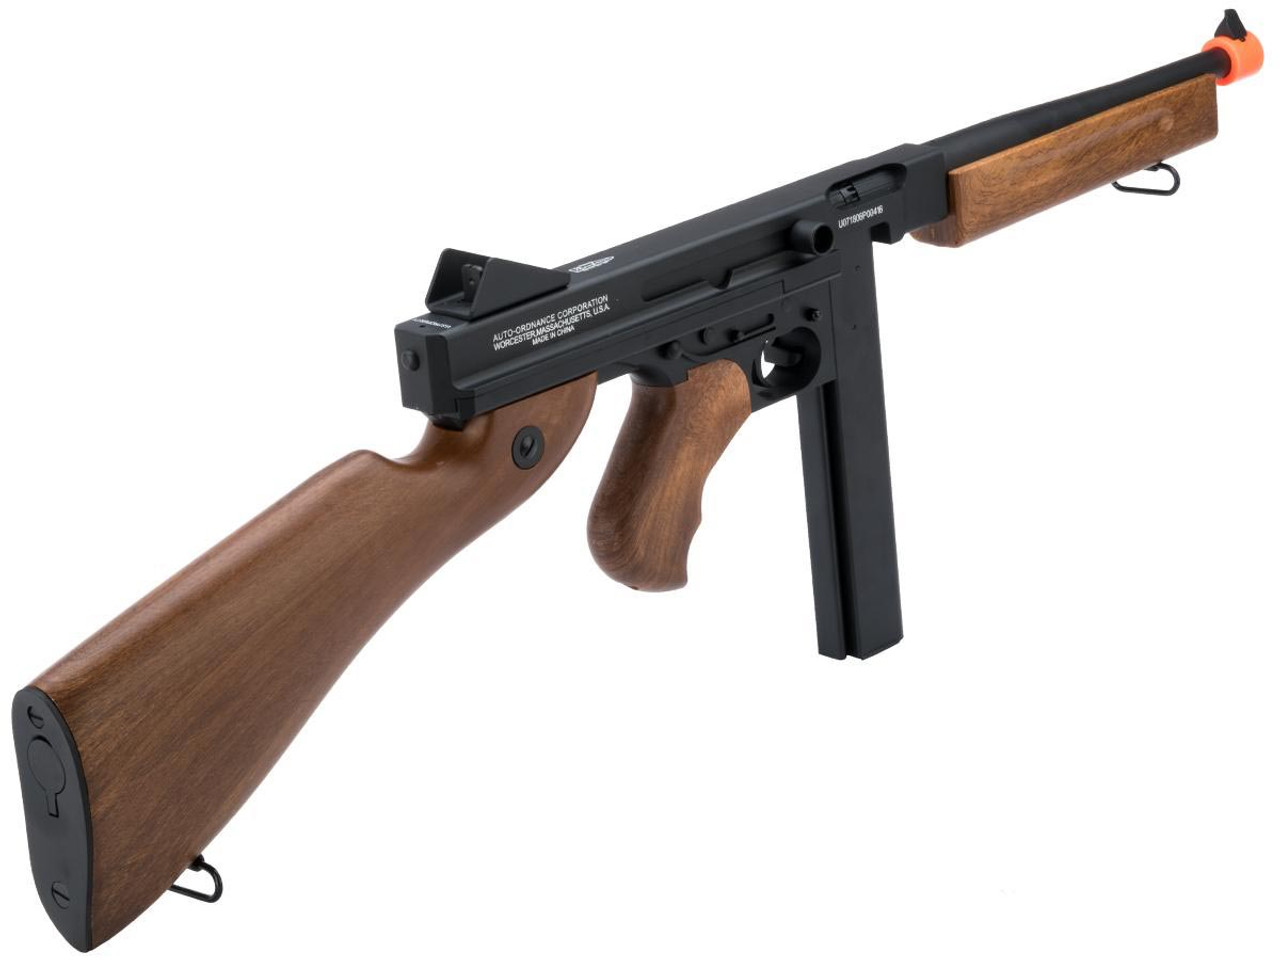 King Arms Thompson M1A1 -Combo